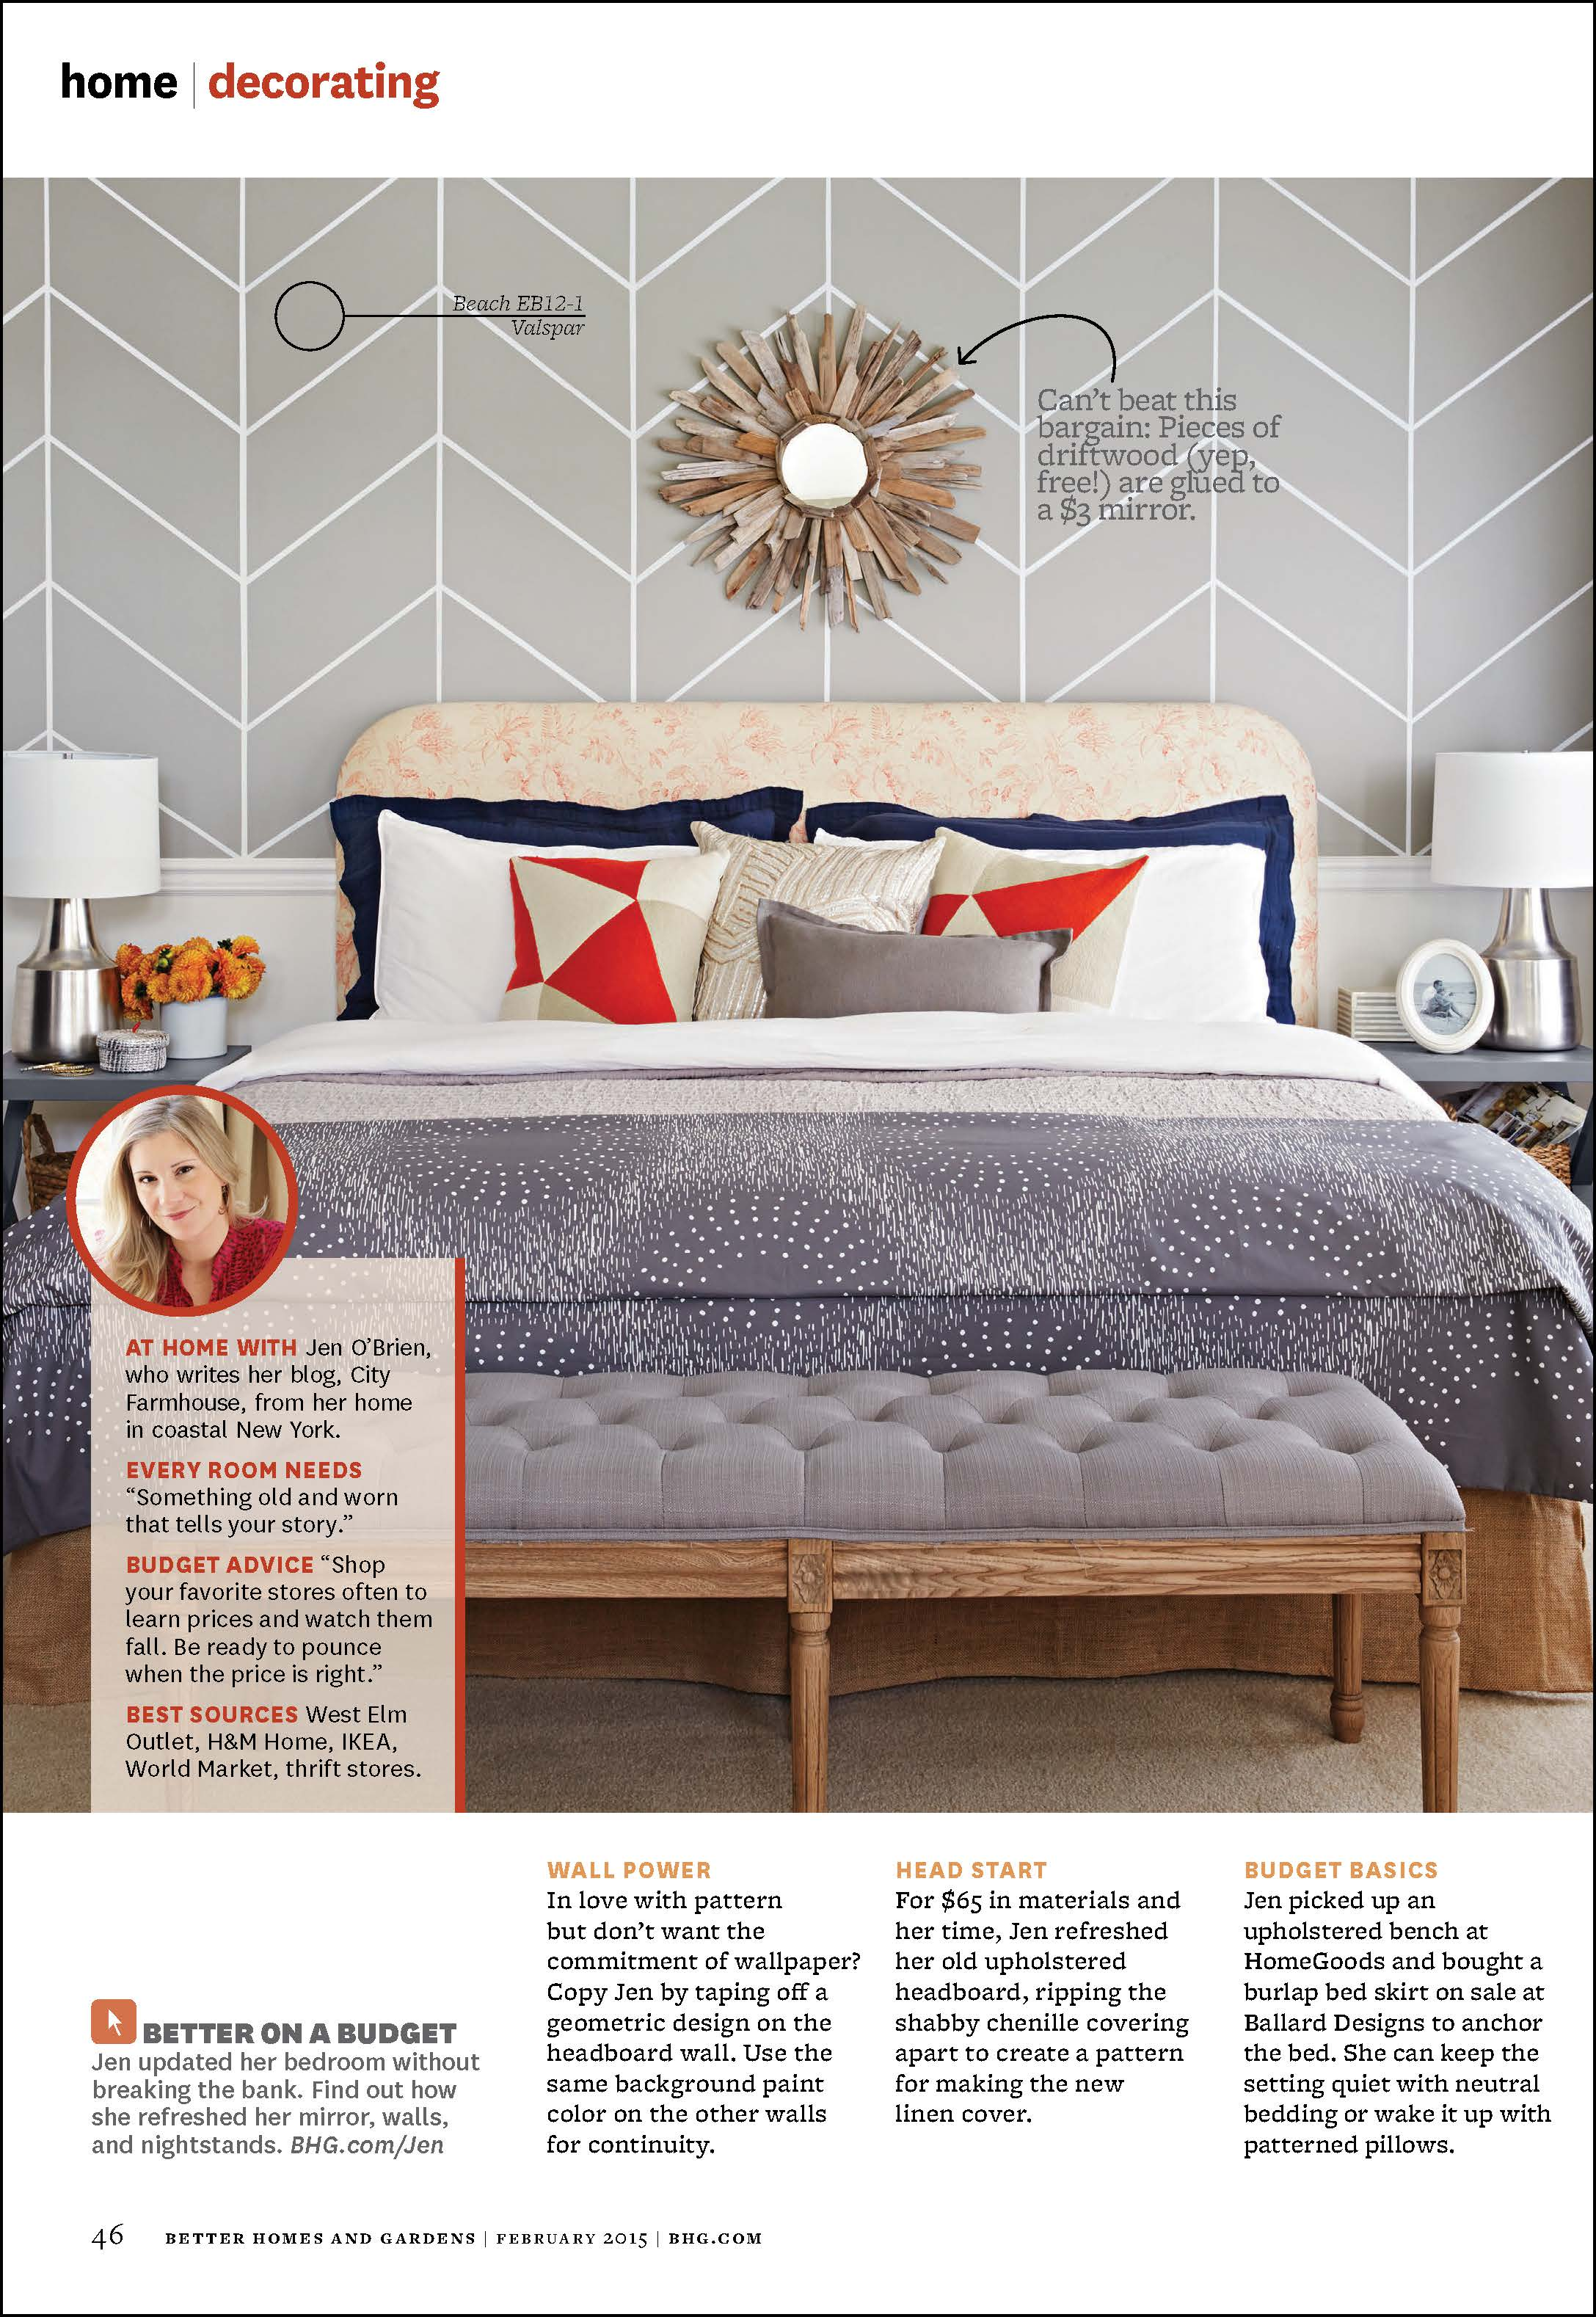 A Look at Decorating with Color: 2008-2018 - Page 8 of 11 ... Bedroom Paint Decorating Better Homes And Gardens on better homes gardens room additions, seventeen bedroom decorating, real life bedroom decorating, martha stewart bedroom decorating, country home bedroom decorating, better homes and gardens entryway decorating, bedroom colors home and garden decorating,